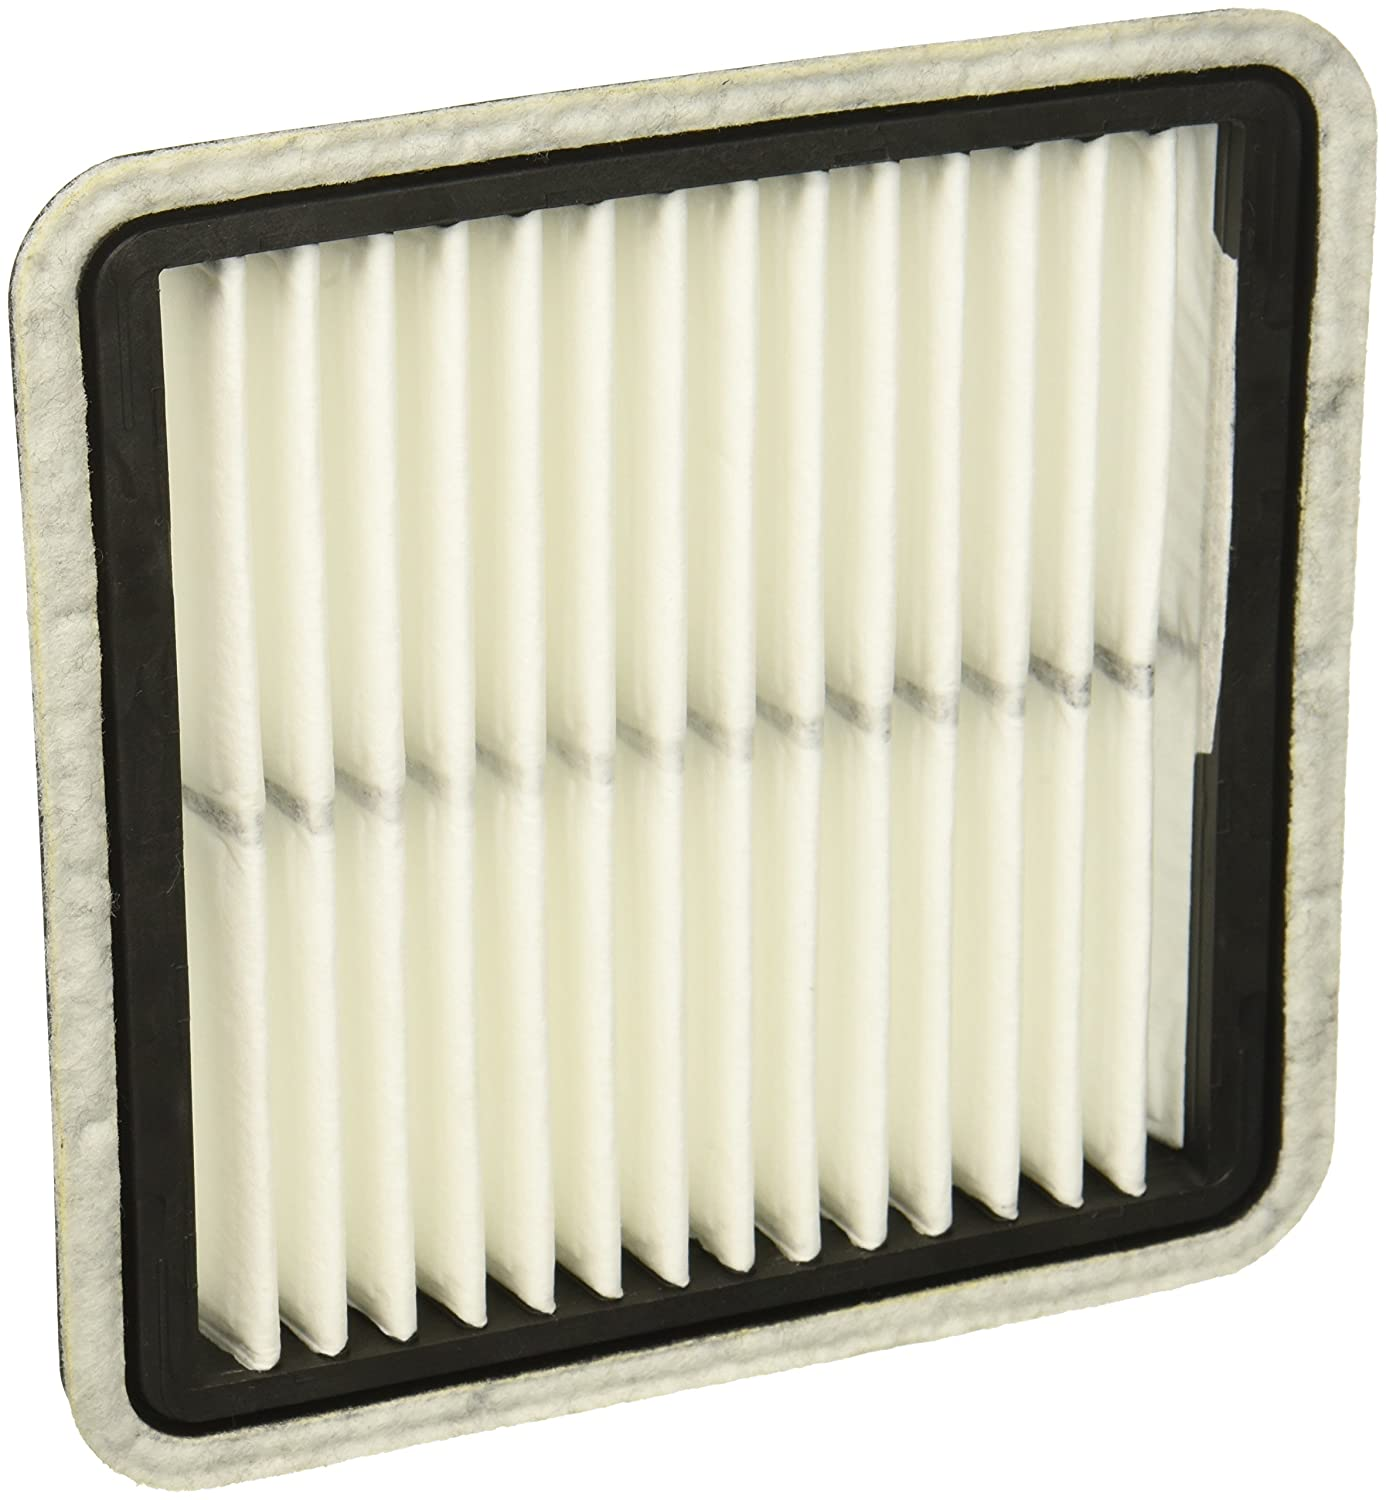 Bosch C3730WS Charcoal Cabin Air Filter